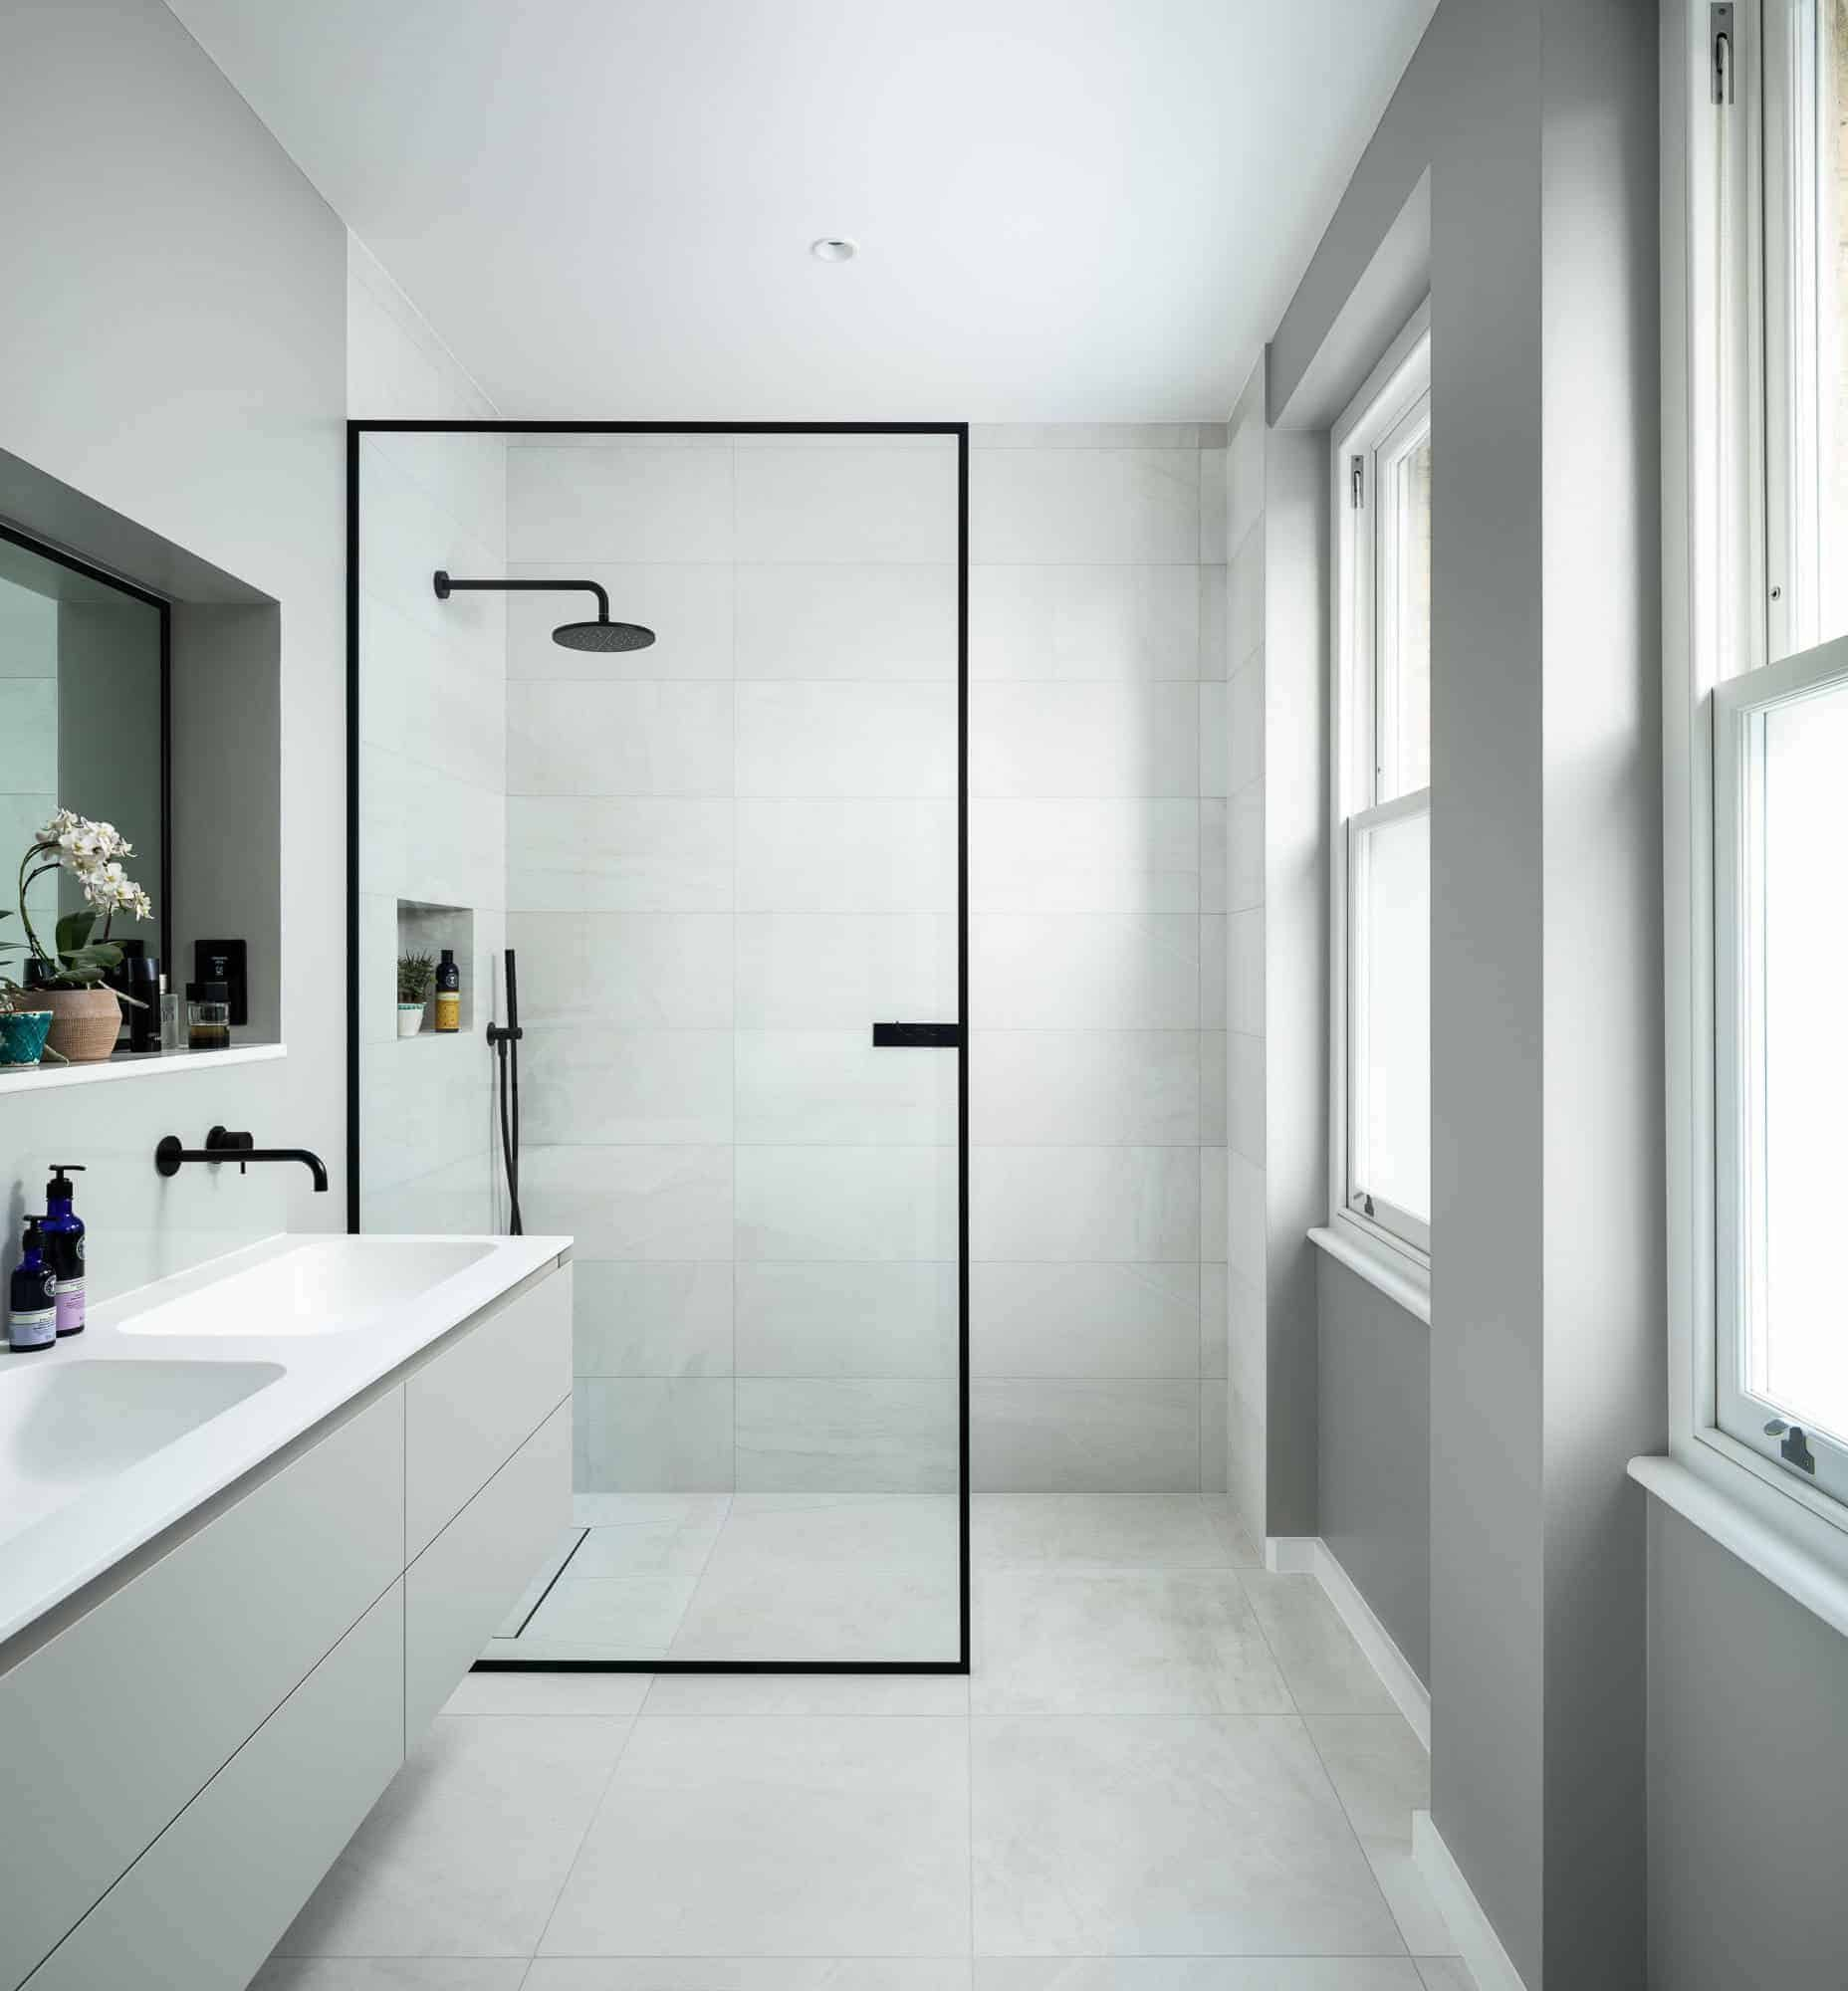 18 Modern Walk In Shower Ideas And Designs For 2020 Photos Showers Without Doors Doorless Shower Walk In Shower